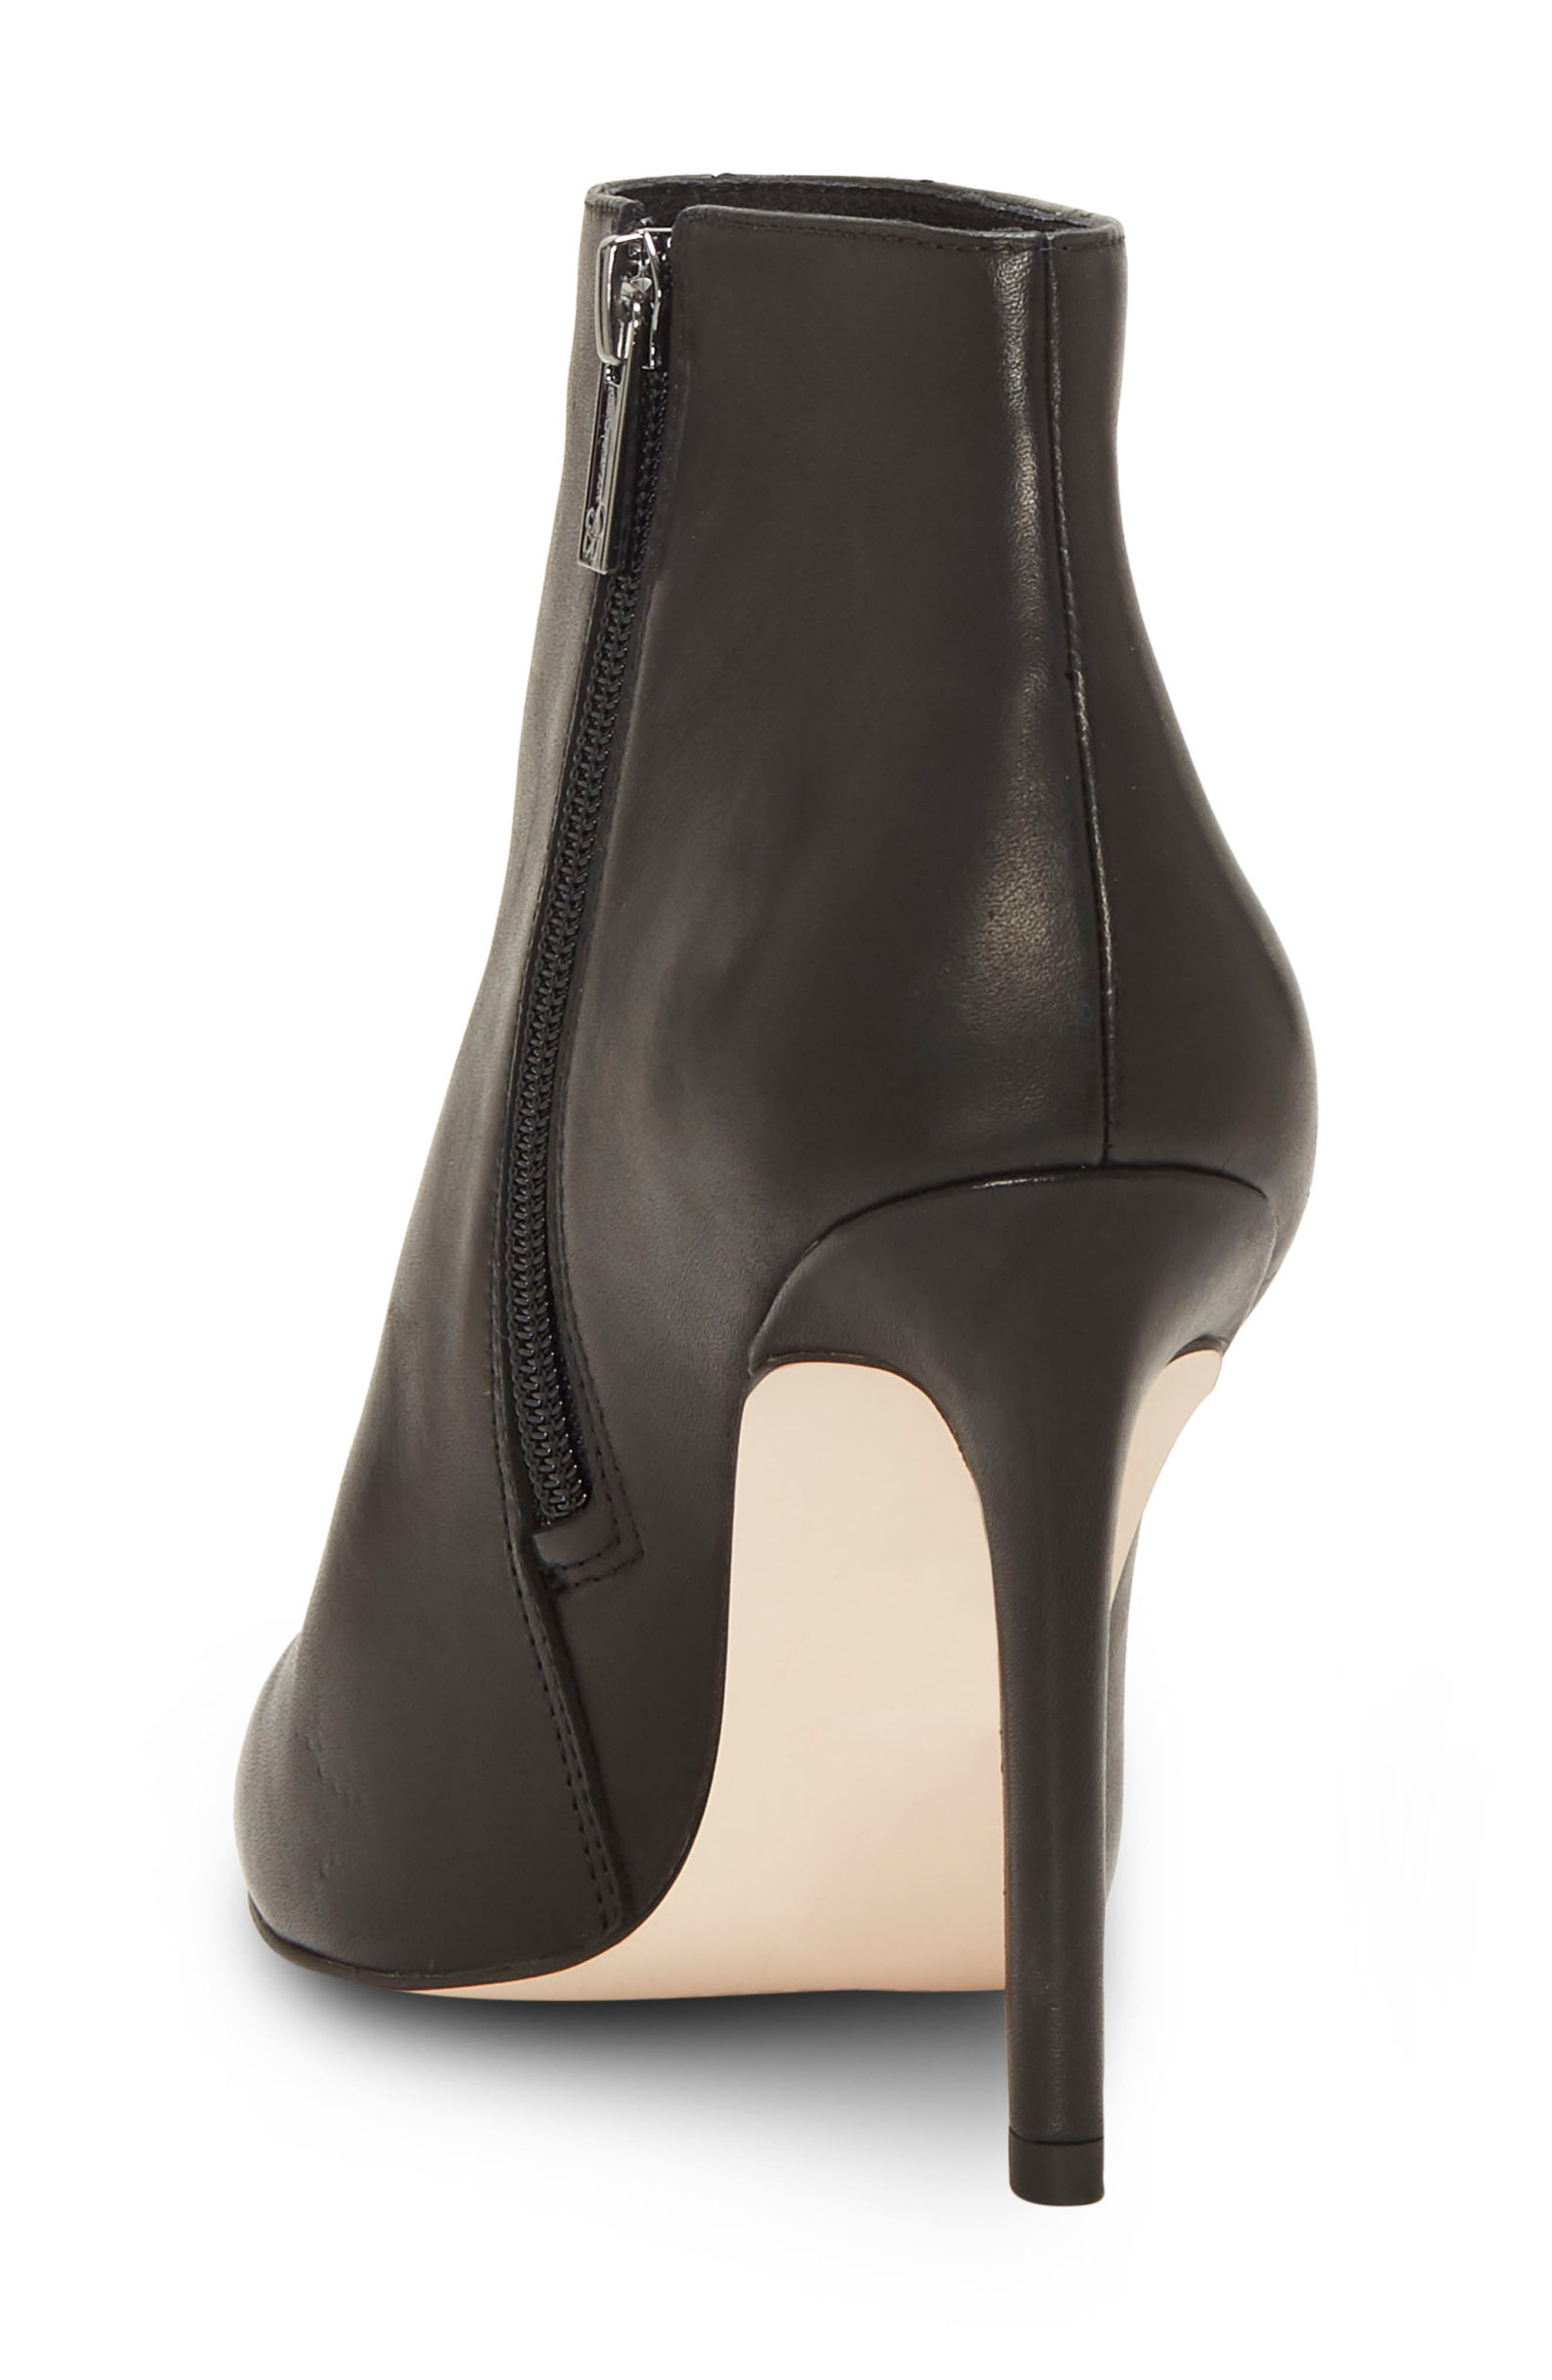 Perci Bootie,                             Alternate thumbnail 2, color,                             BLACK LEATHER